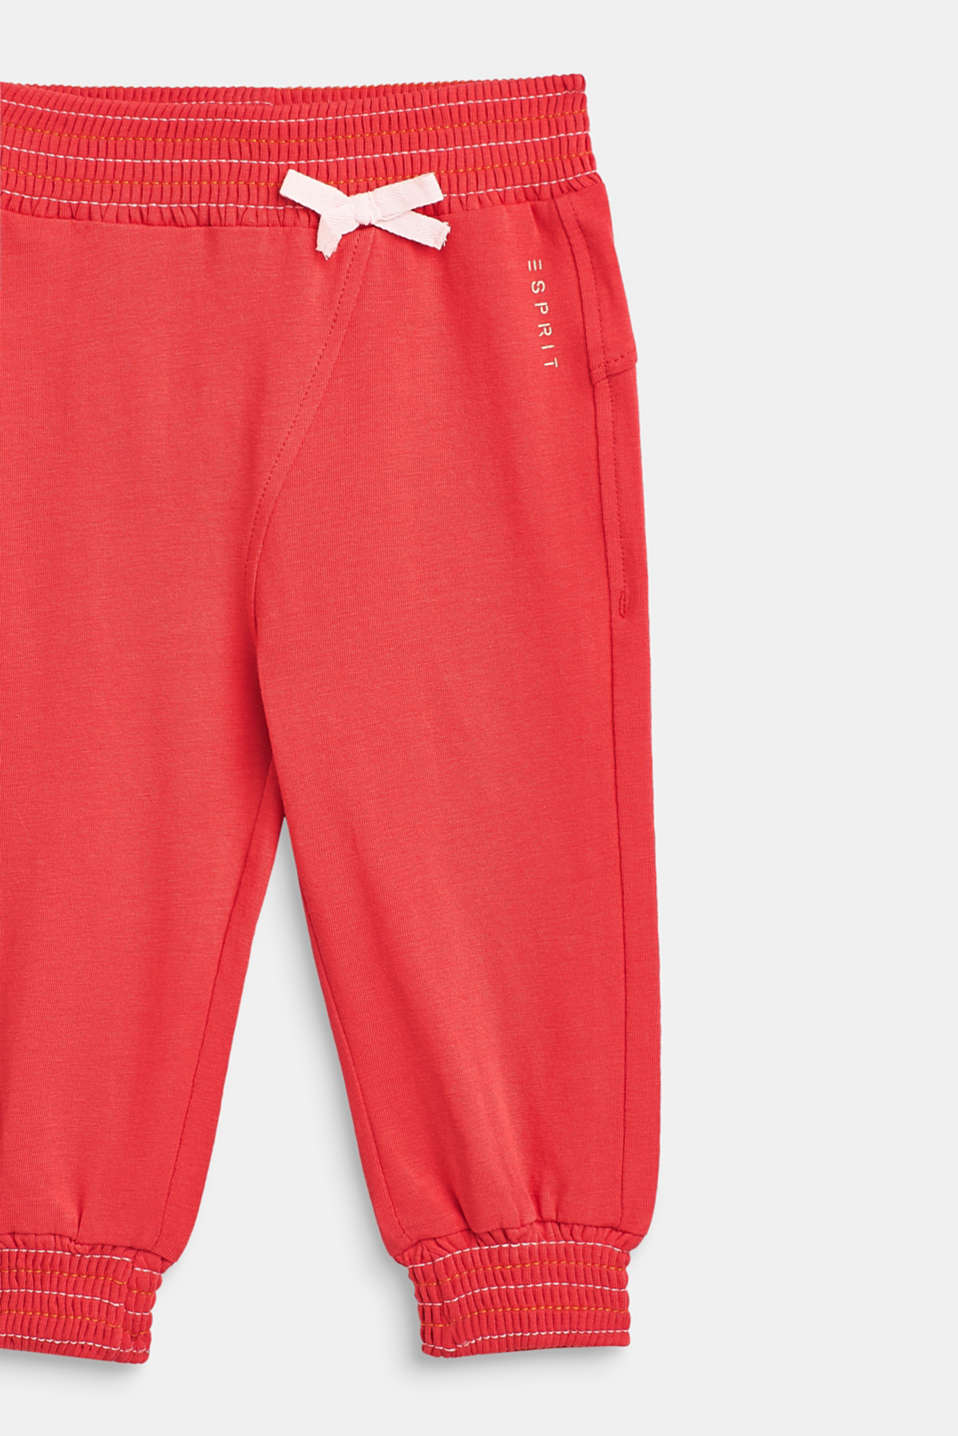 Stretch jersey trousers with elasticated cuffs, LCWATERMELON, detail image number 2